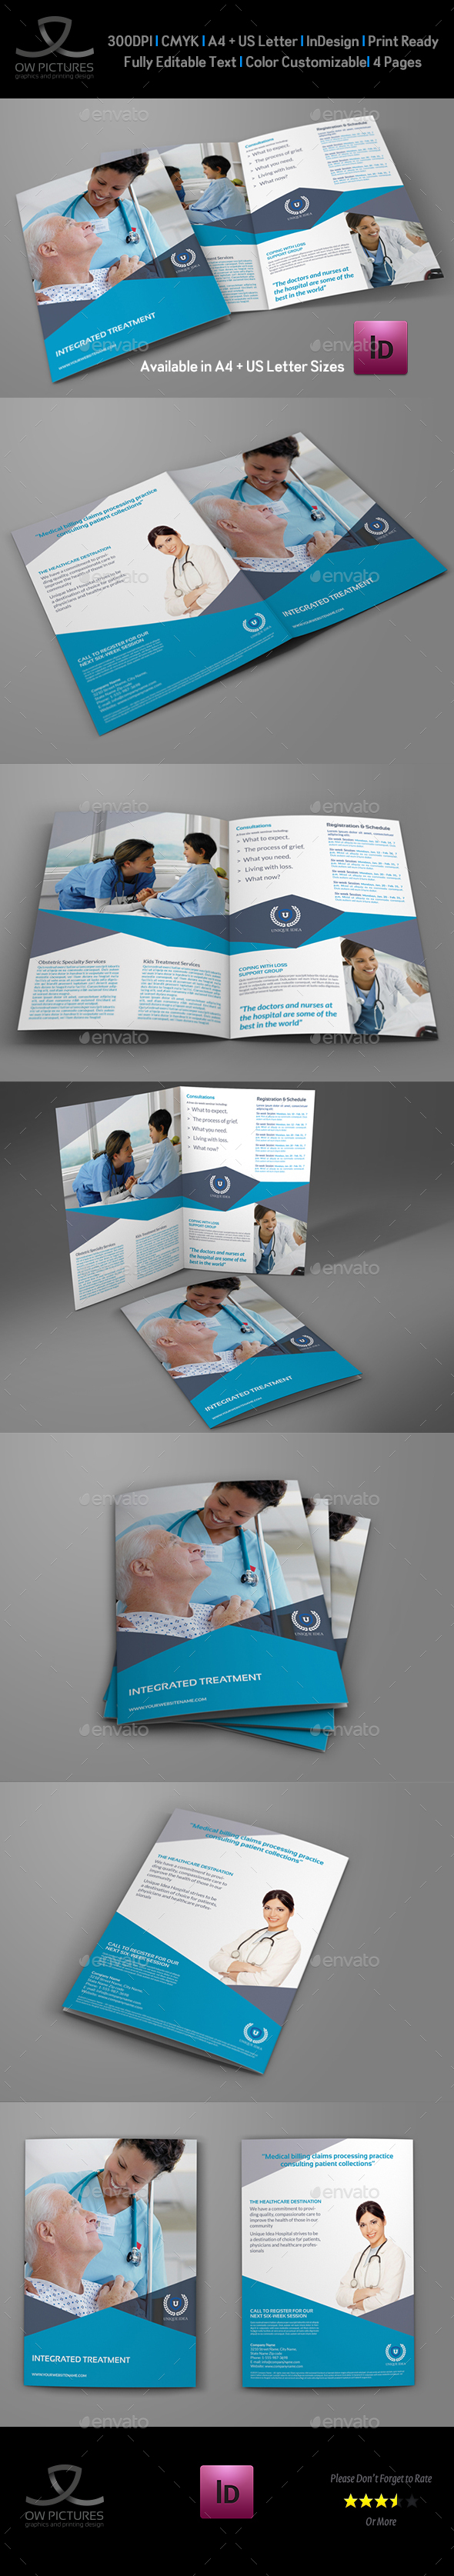 Medical Care Bi-Fold Brochure Template - Brochures Print Templates